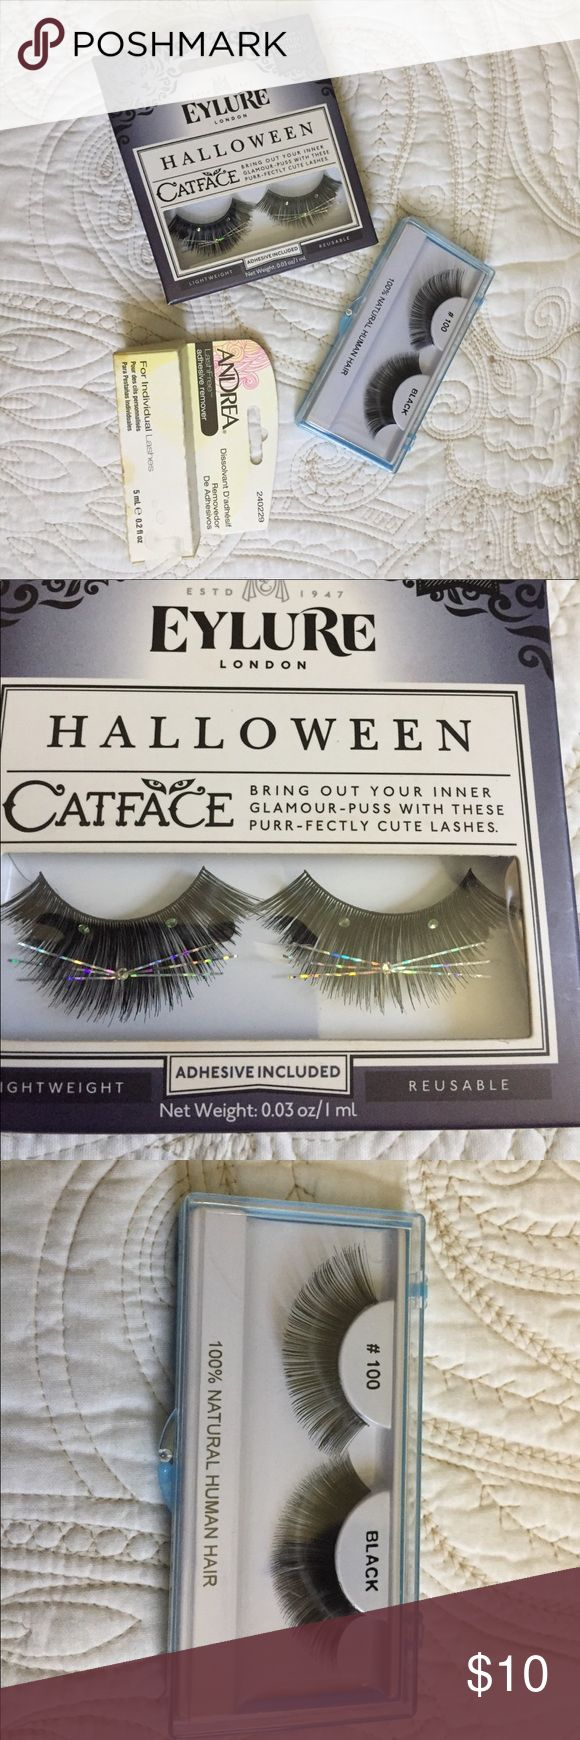 Set of Two eyelashes and an adhesive remover NEW Set of Two eyelashes: Eylure Halloween Catface and a 100% human hair black set, and an Andrea adhesive remover NEW. Bundle and save even more. Happy poshing! various Makeup False Eyelashes